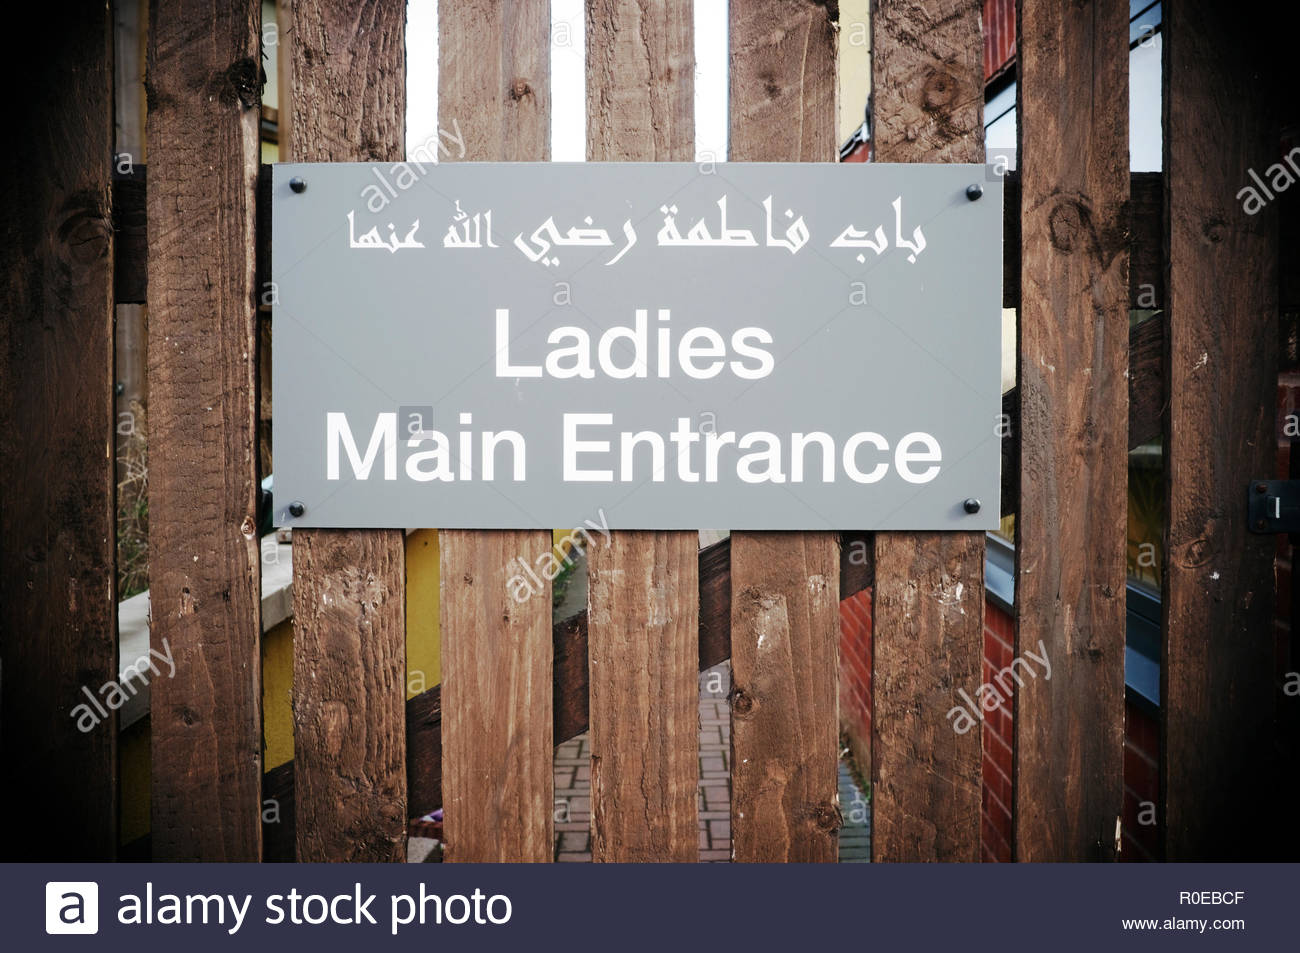 Segragated entrance for females to use, at the side of the Hazrat Bilal Centre in Sevier Street, Bristol, UK. - Stock Image